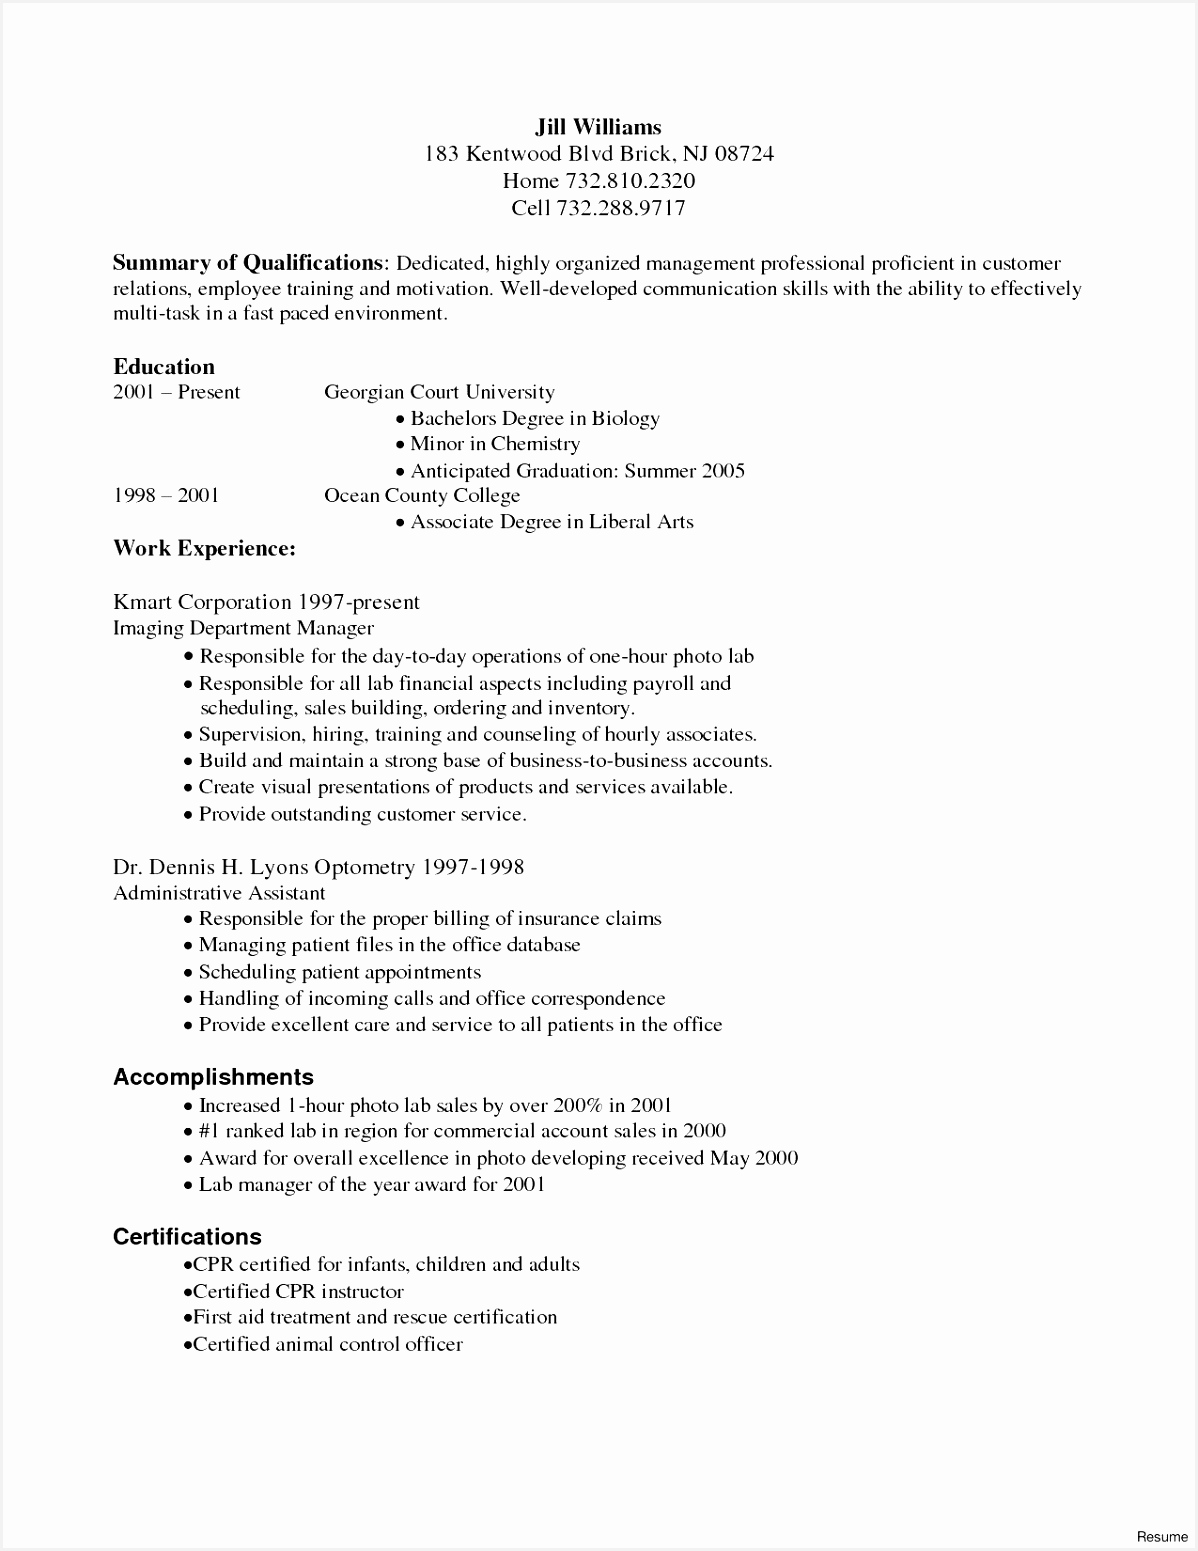 Sample Doctor Of Education Curriculum Vitae on academic cv templates, physician assistant, cv resume, for writers, catholic religious orders, best drivers,